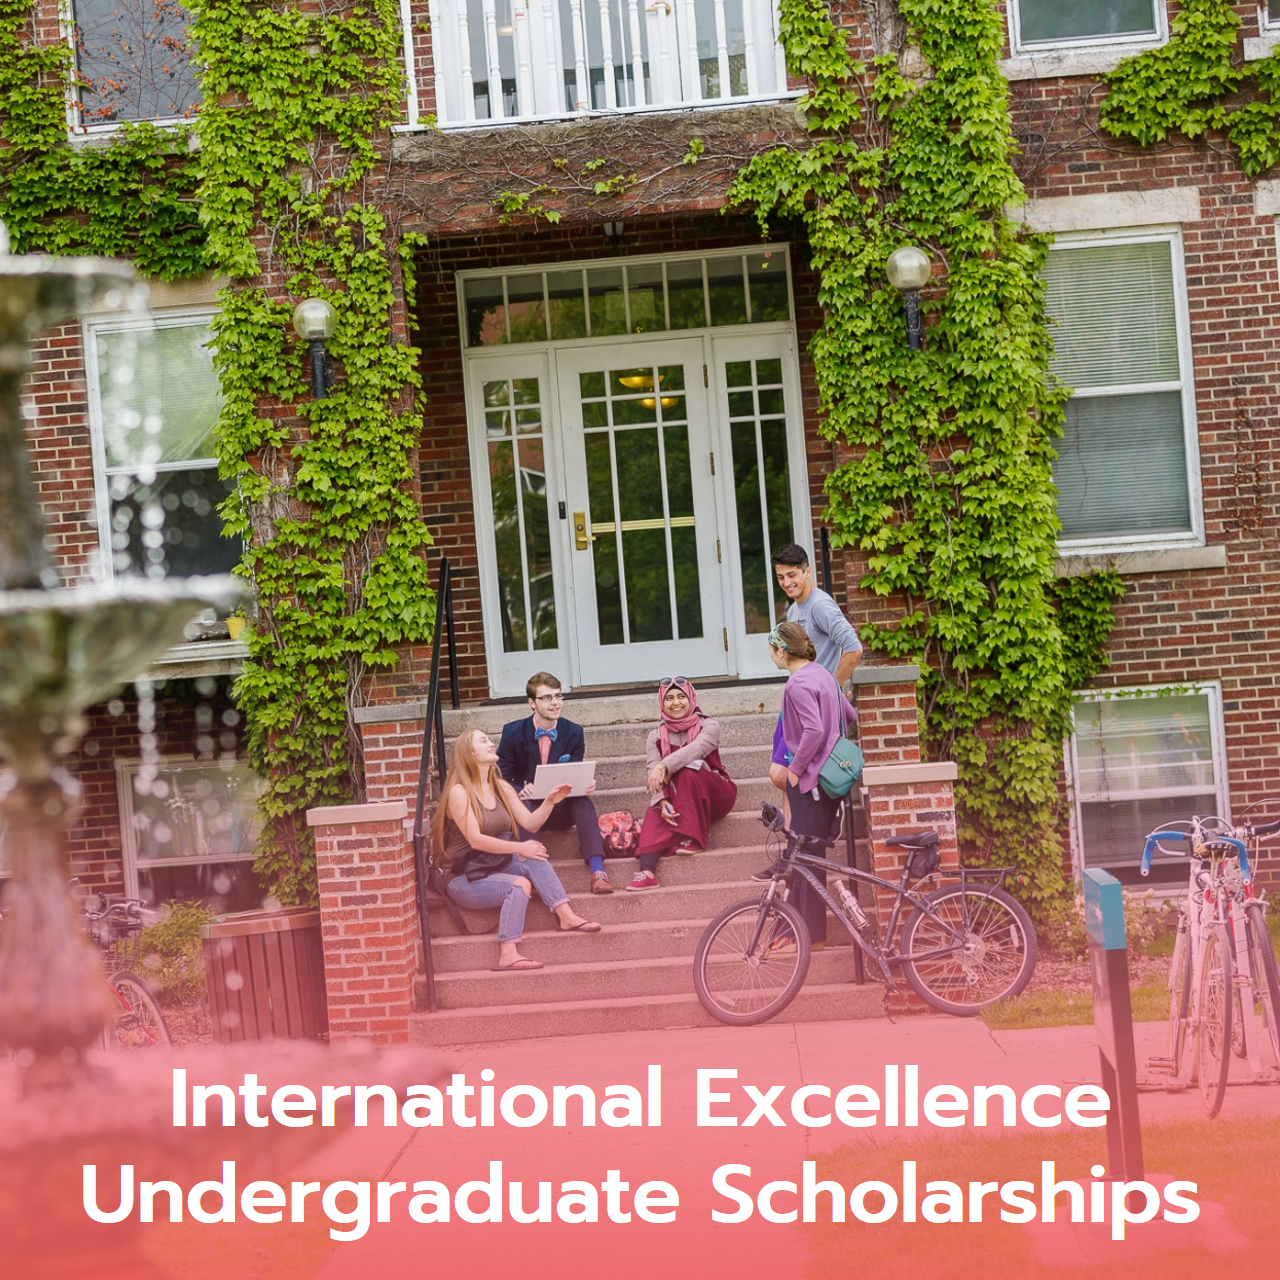 International Excellence Undergraduate Scholarships